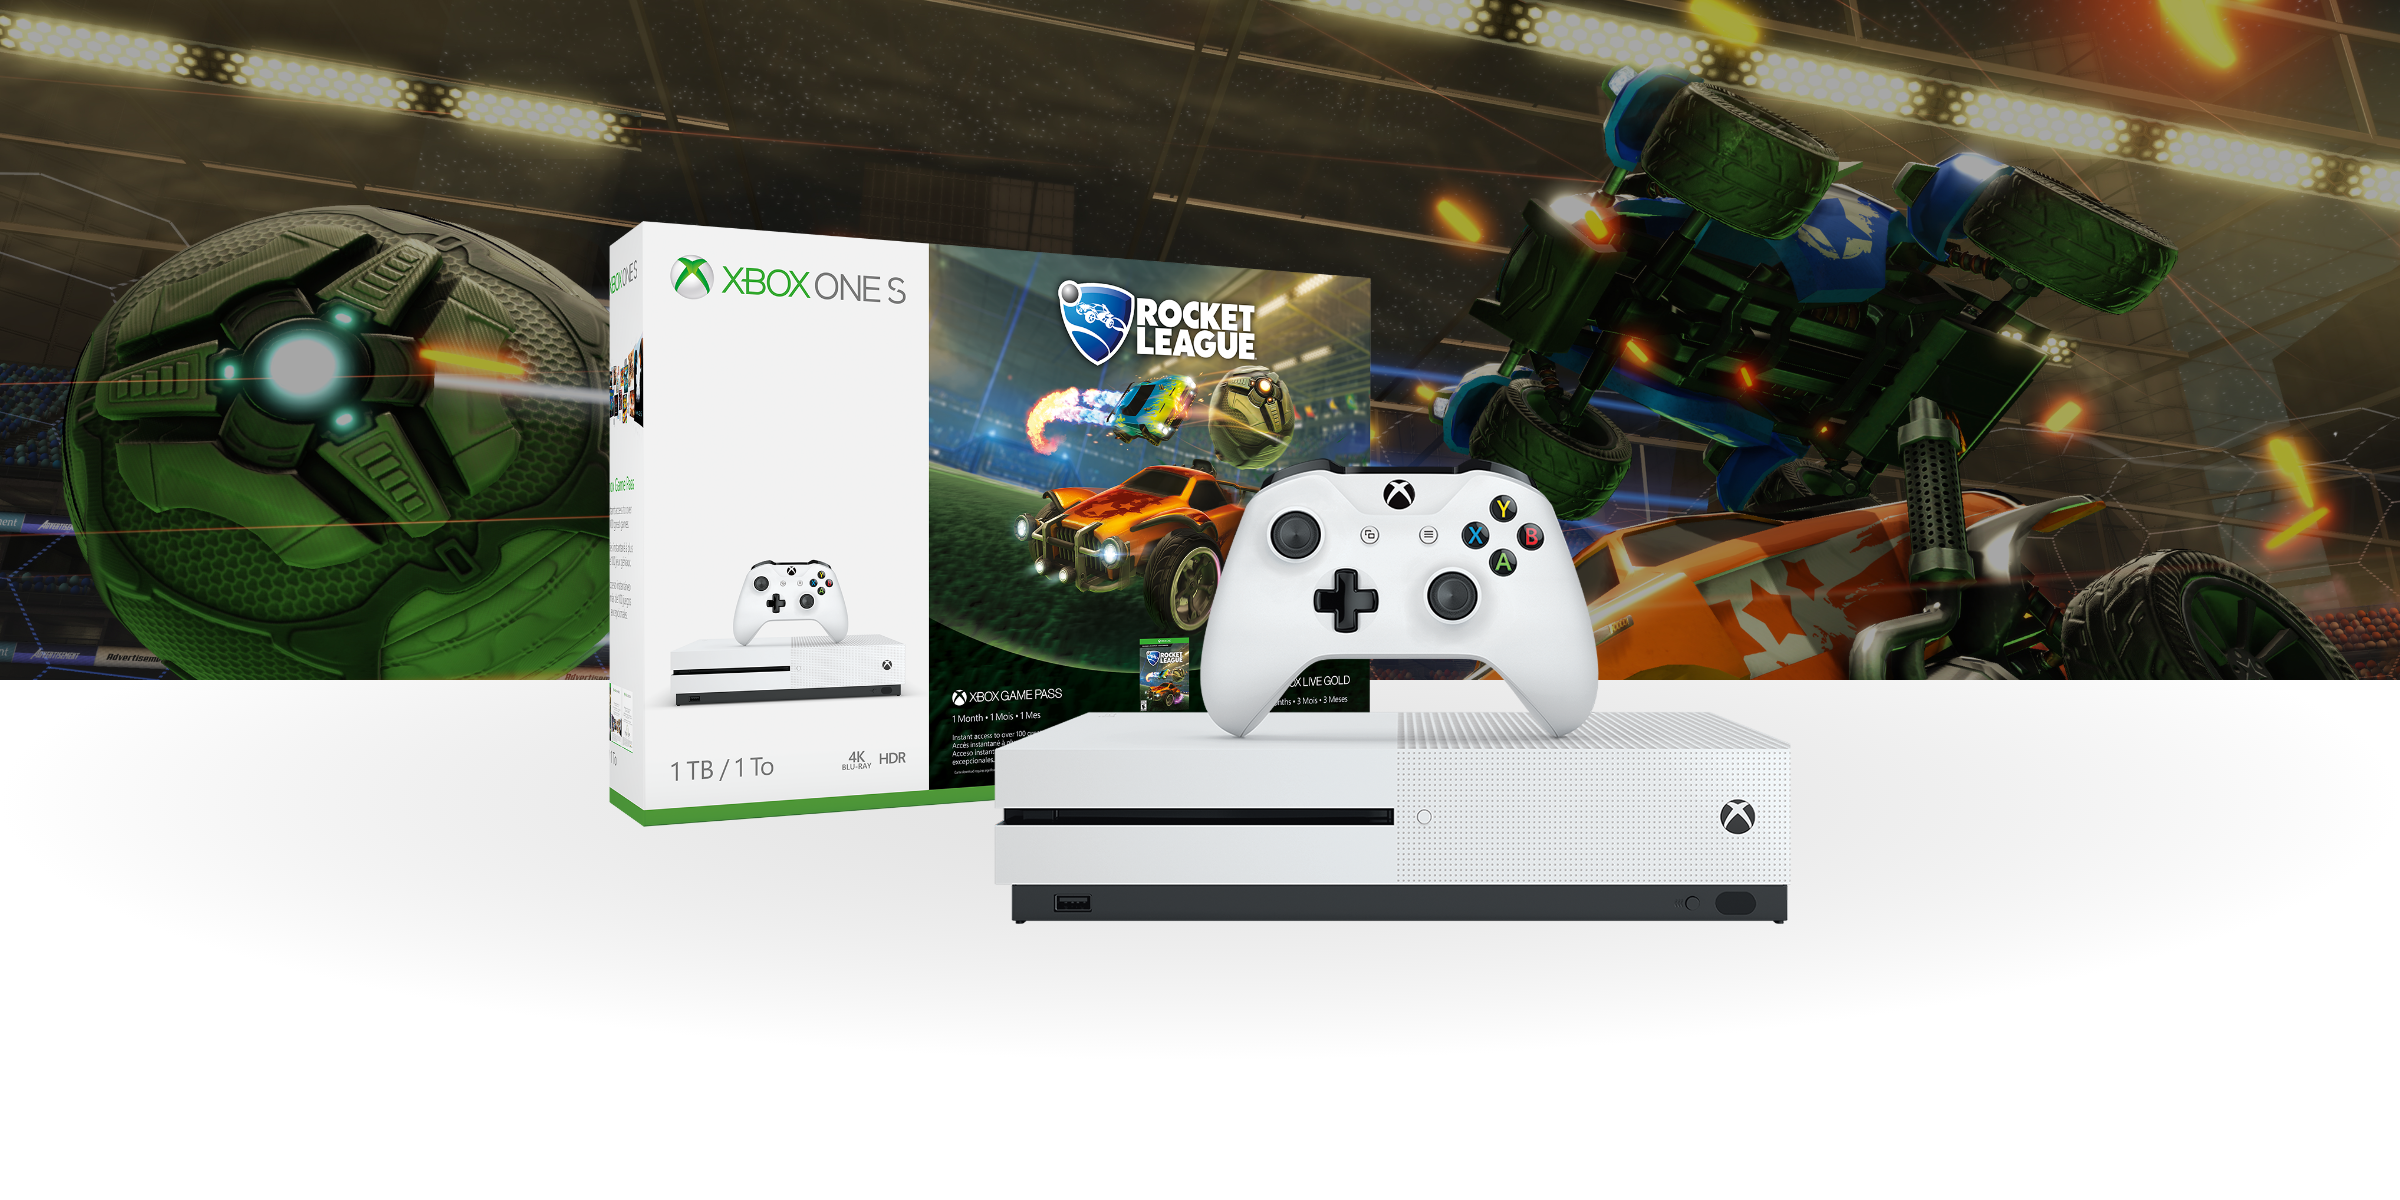 Xbox One S with rocket league bundle box with key art background